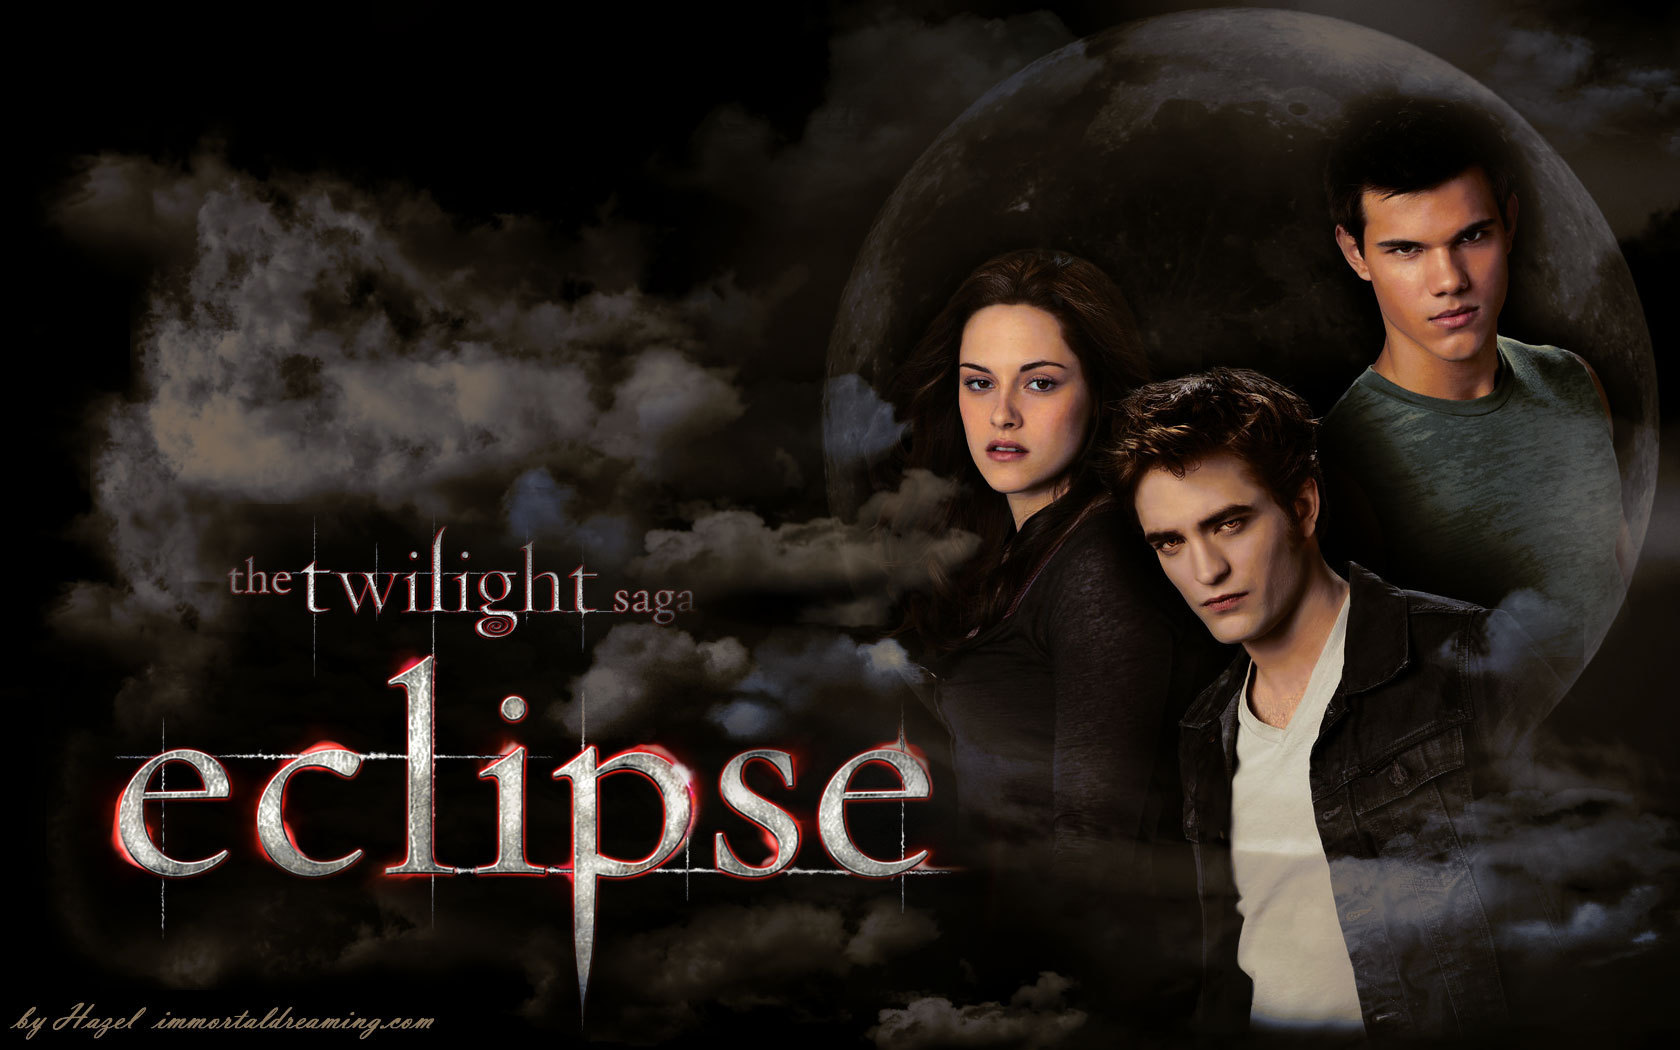 The Twilight Saga Eclipse Wallpapers and Background Images 1680x1050